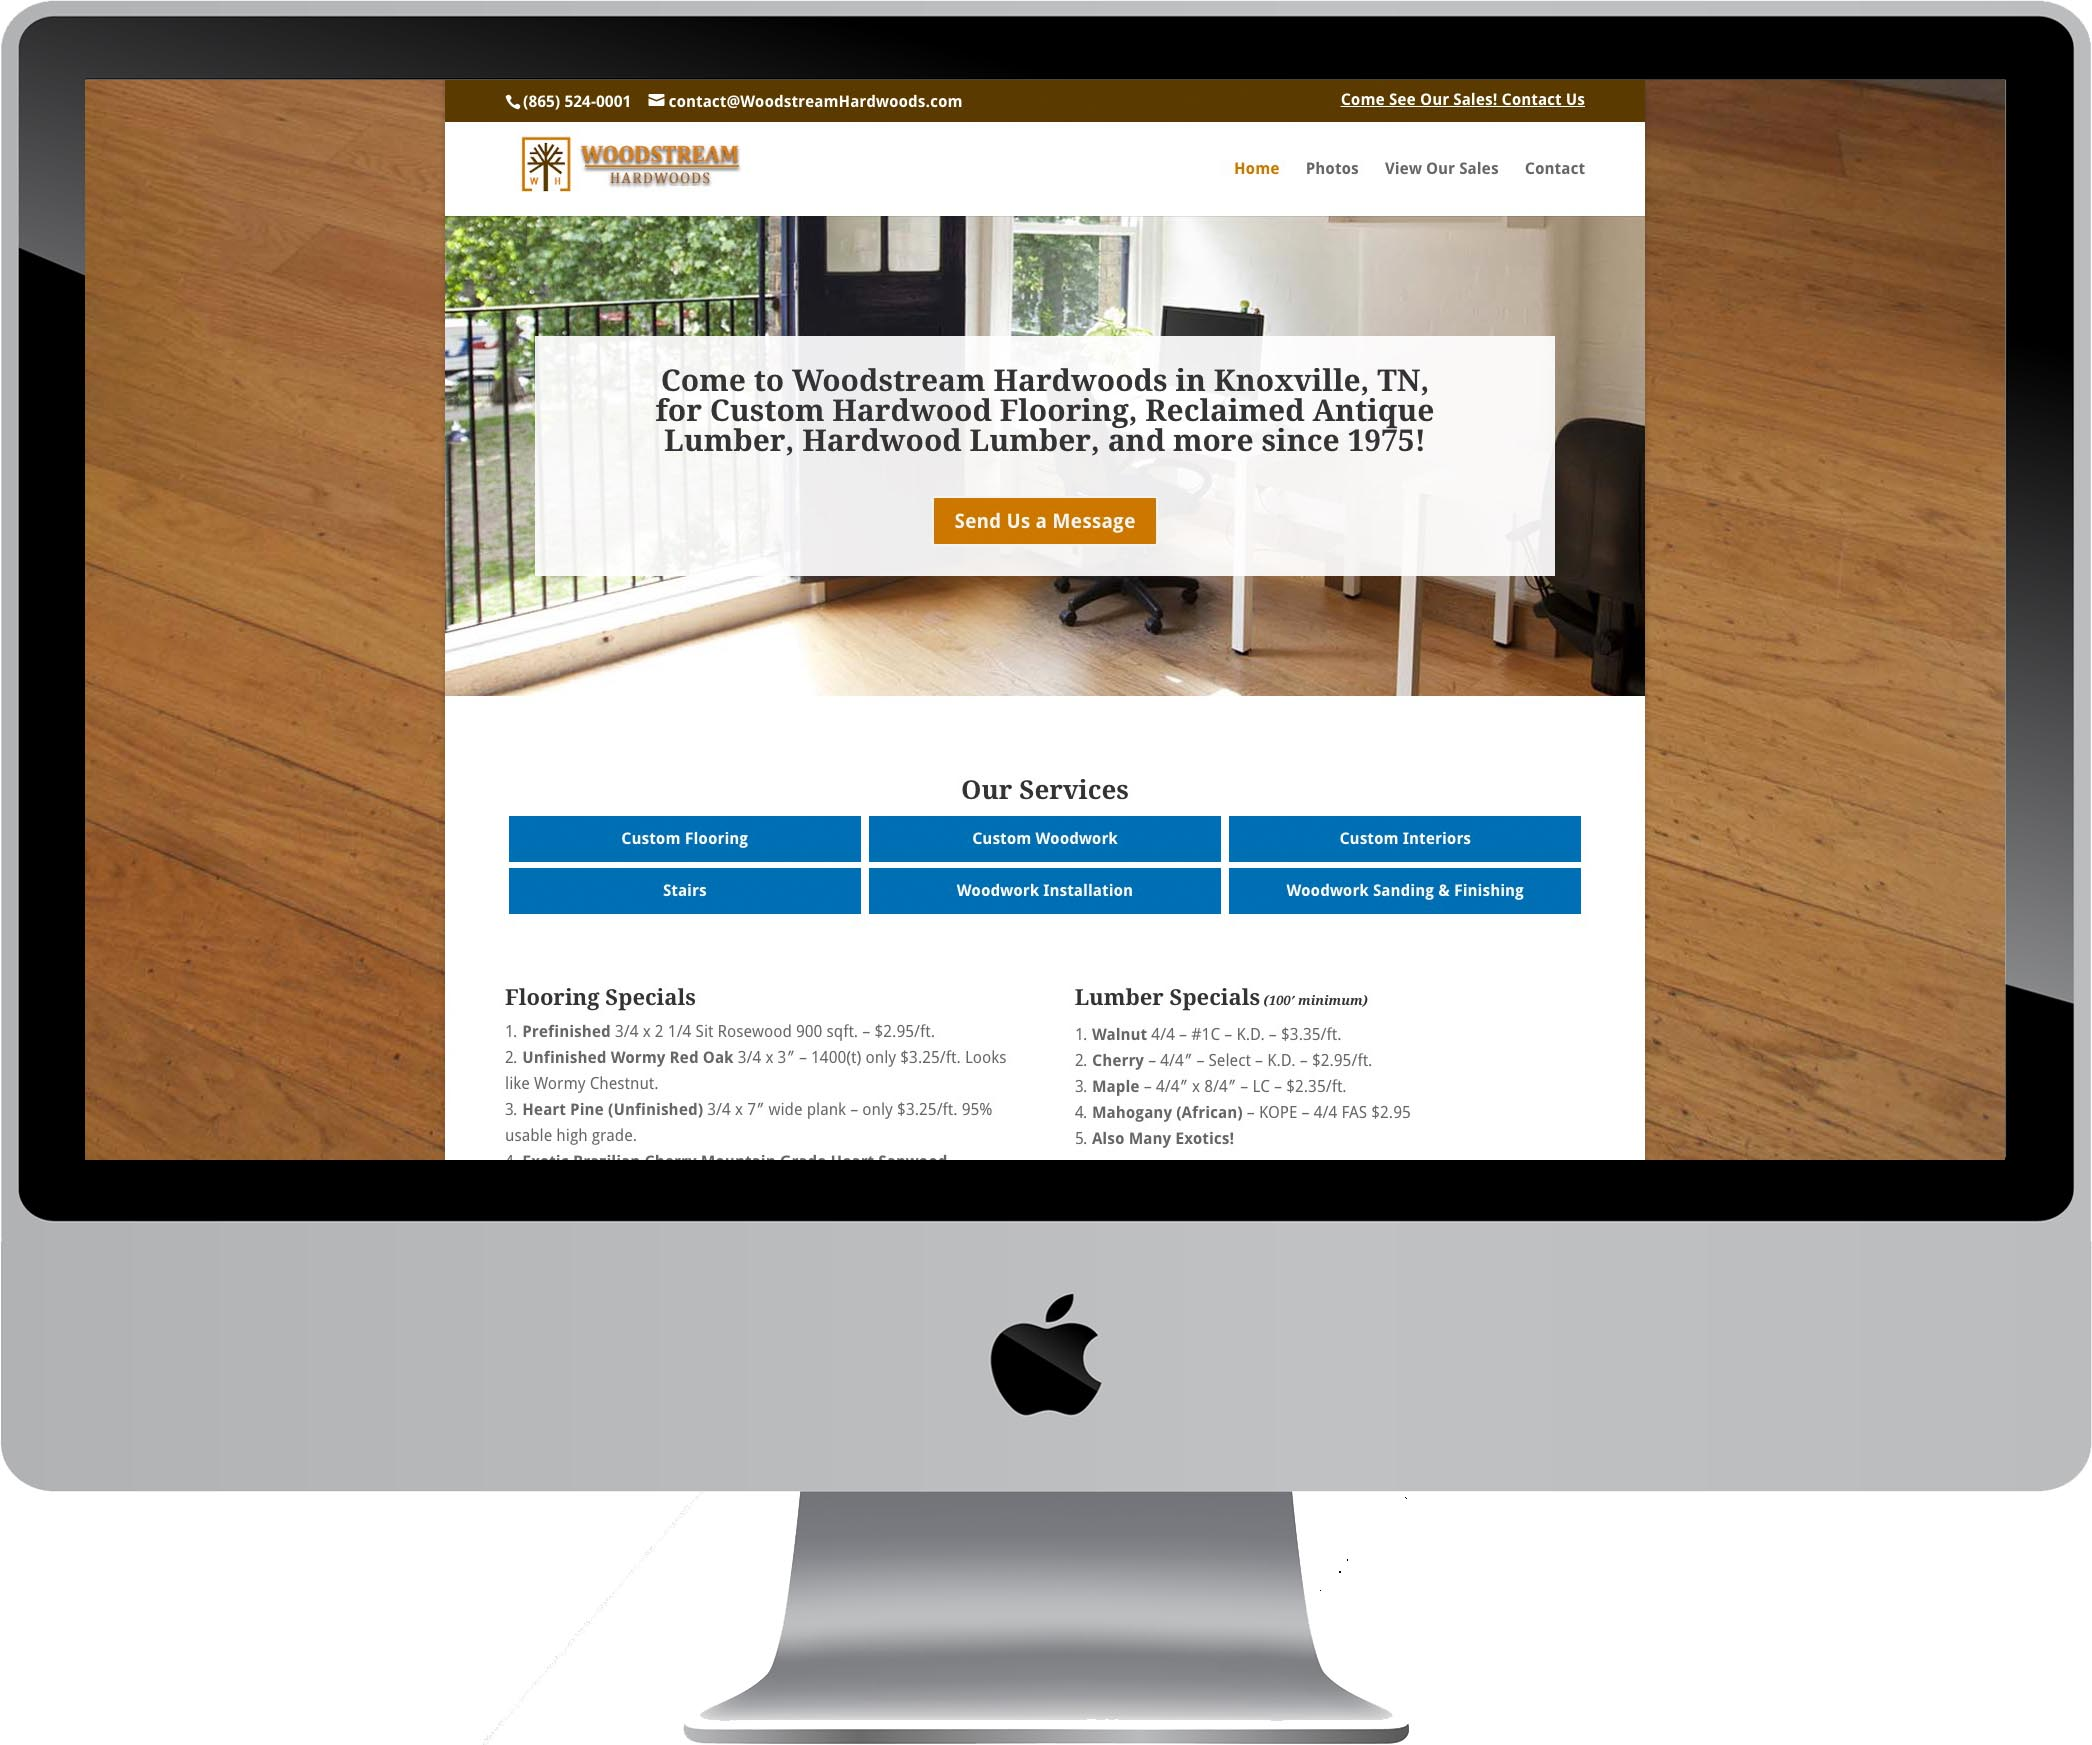 Woodstream Hardwoods Website Design